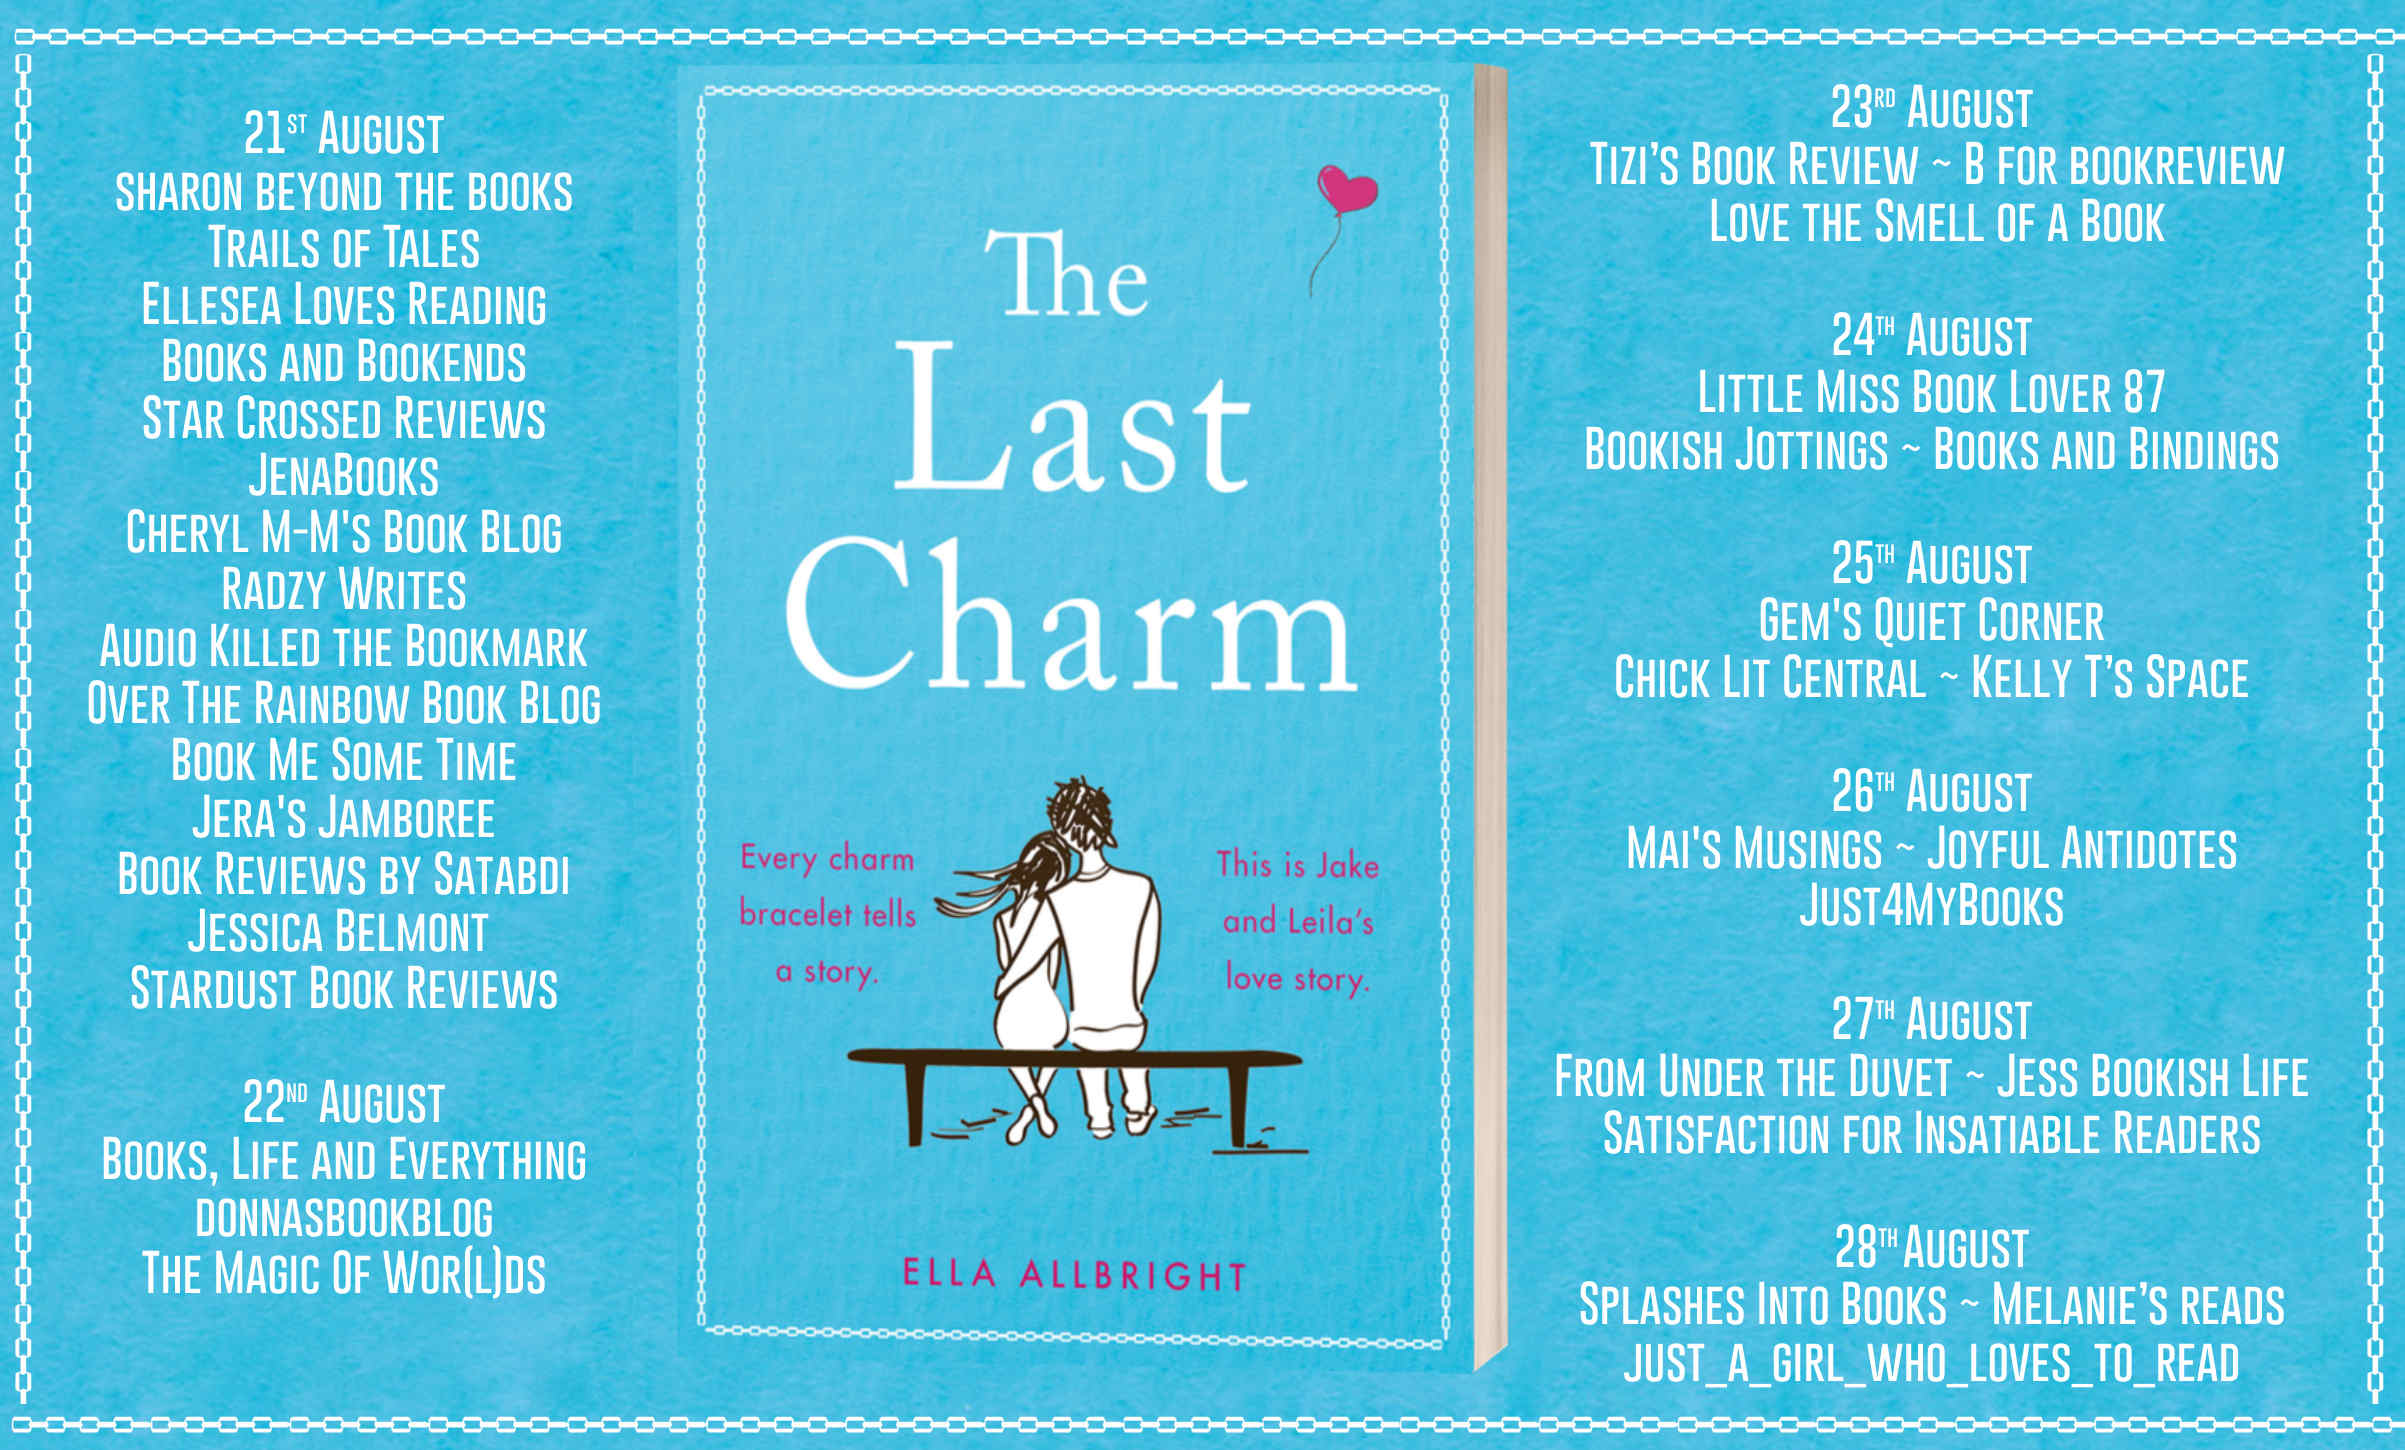 The Last Charm Full Tour Banner